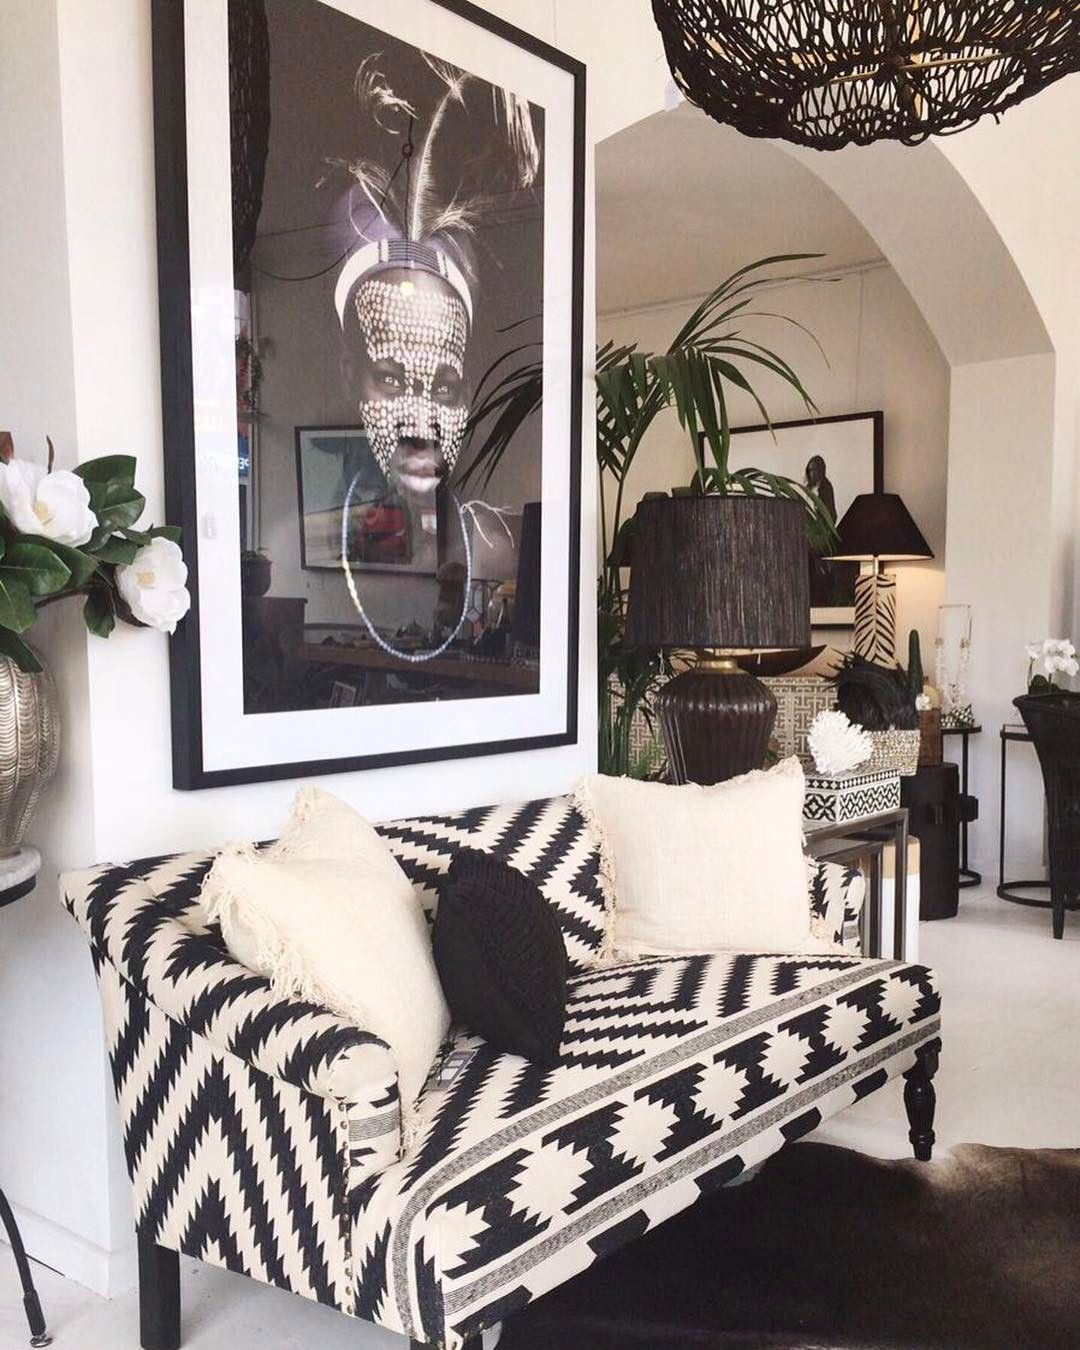 21 African Decorating Ideas For Modern Homes: FREY︒ (@frey.home) On Instagram